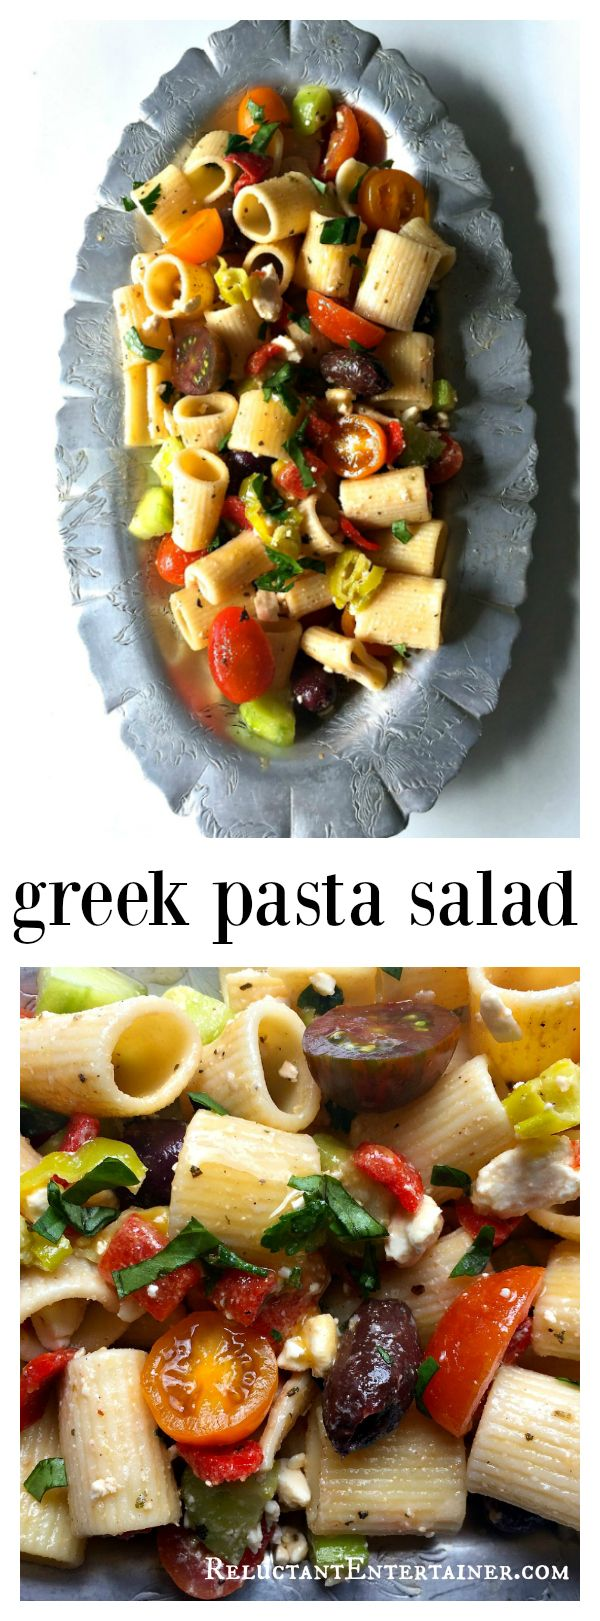 Make this Greek Pasta Salad ahead of time and refrigerate up to 24 hours for delicious flavor. Excellent to bring to a potluck or a summer party!